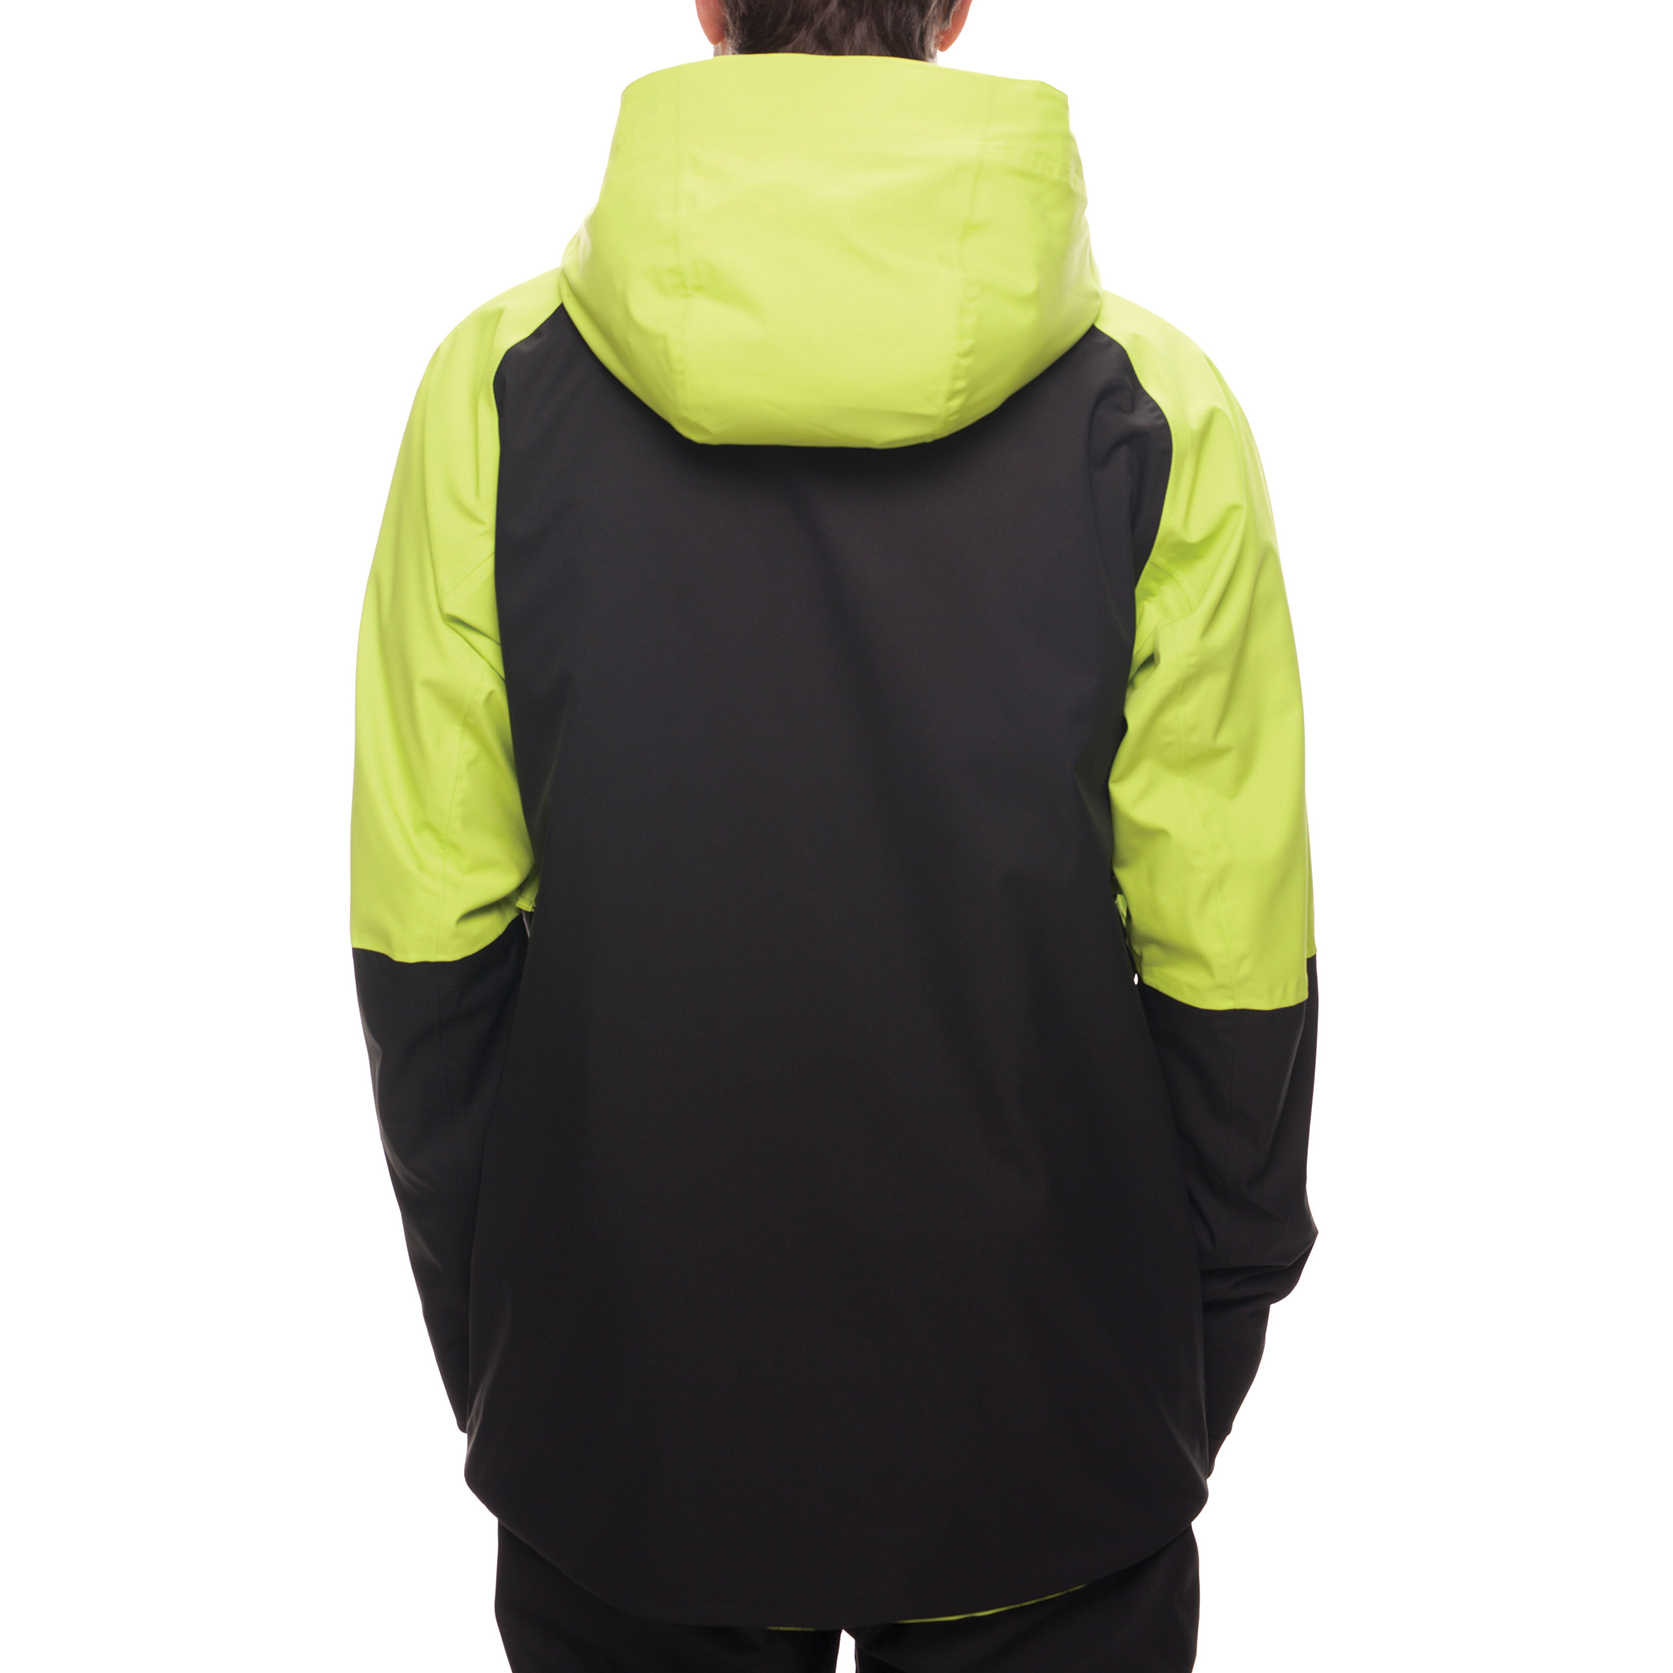 Veste de snowboard GLCR Hydra Thermagraph Jacket - Lime Twill Color Block 1